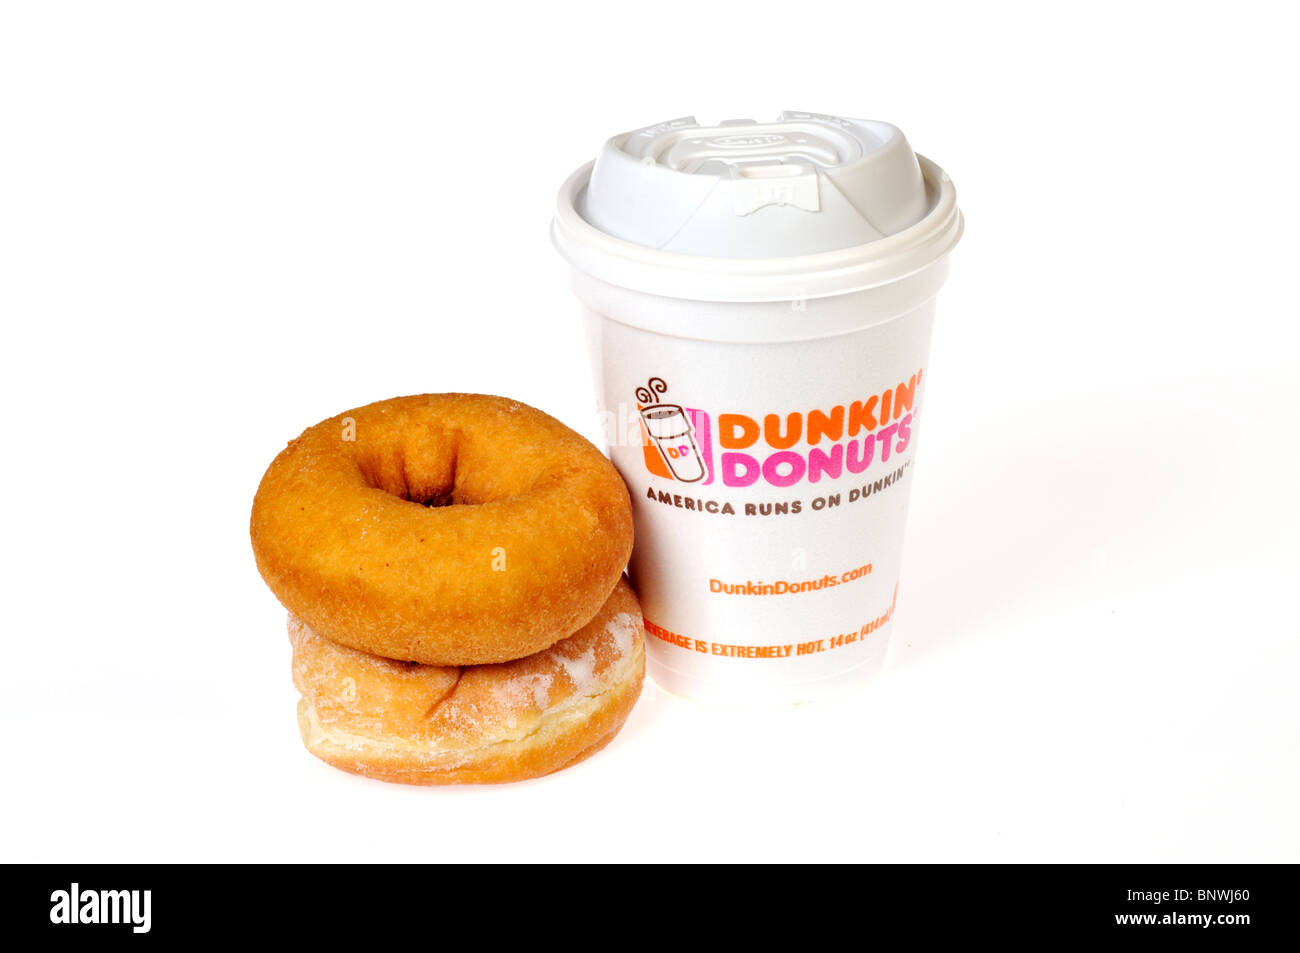 A hot styrofoam cup of Dunkin Donuts coffee with plain and jelly ...